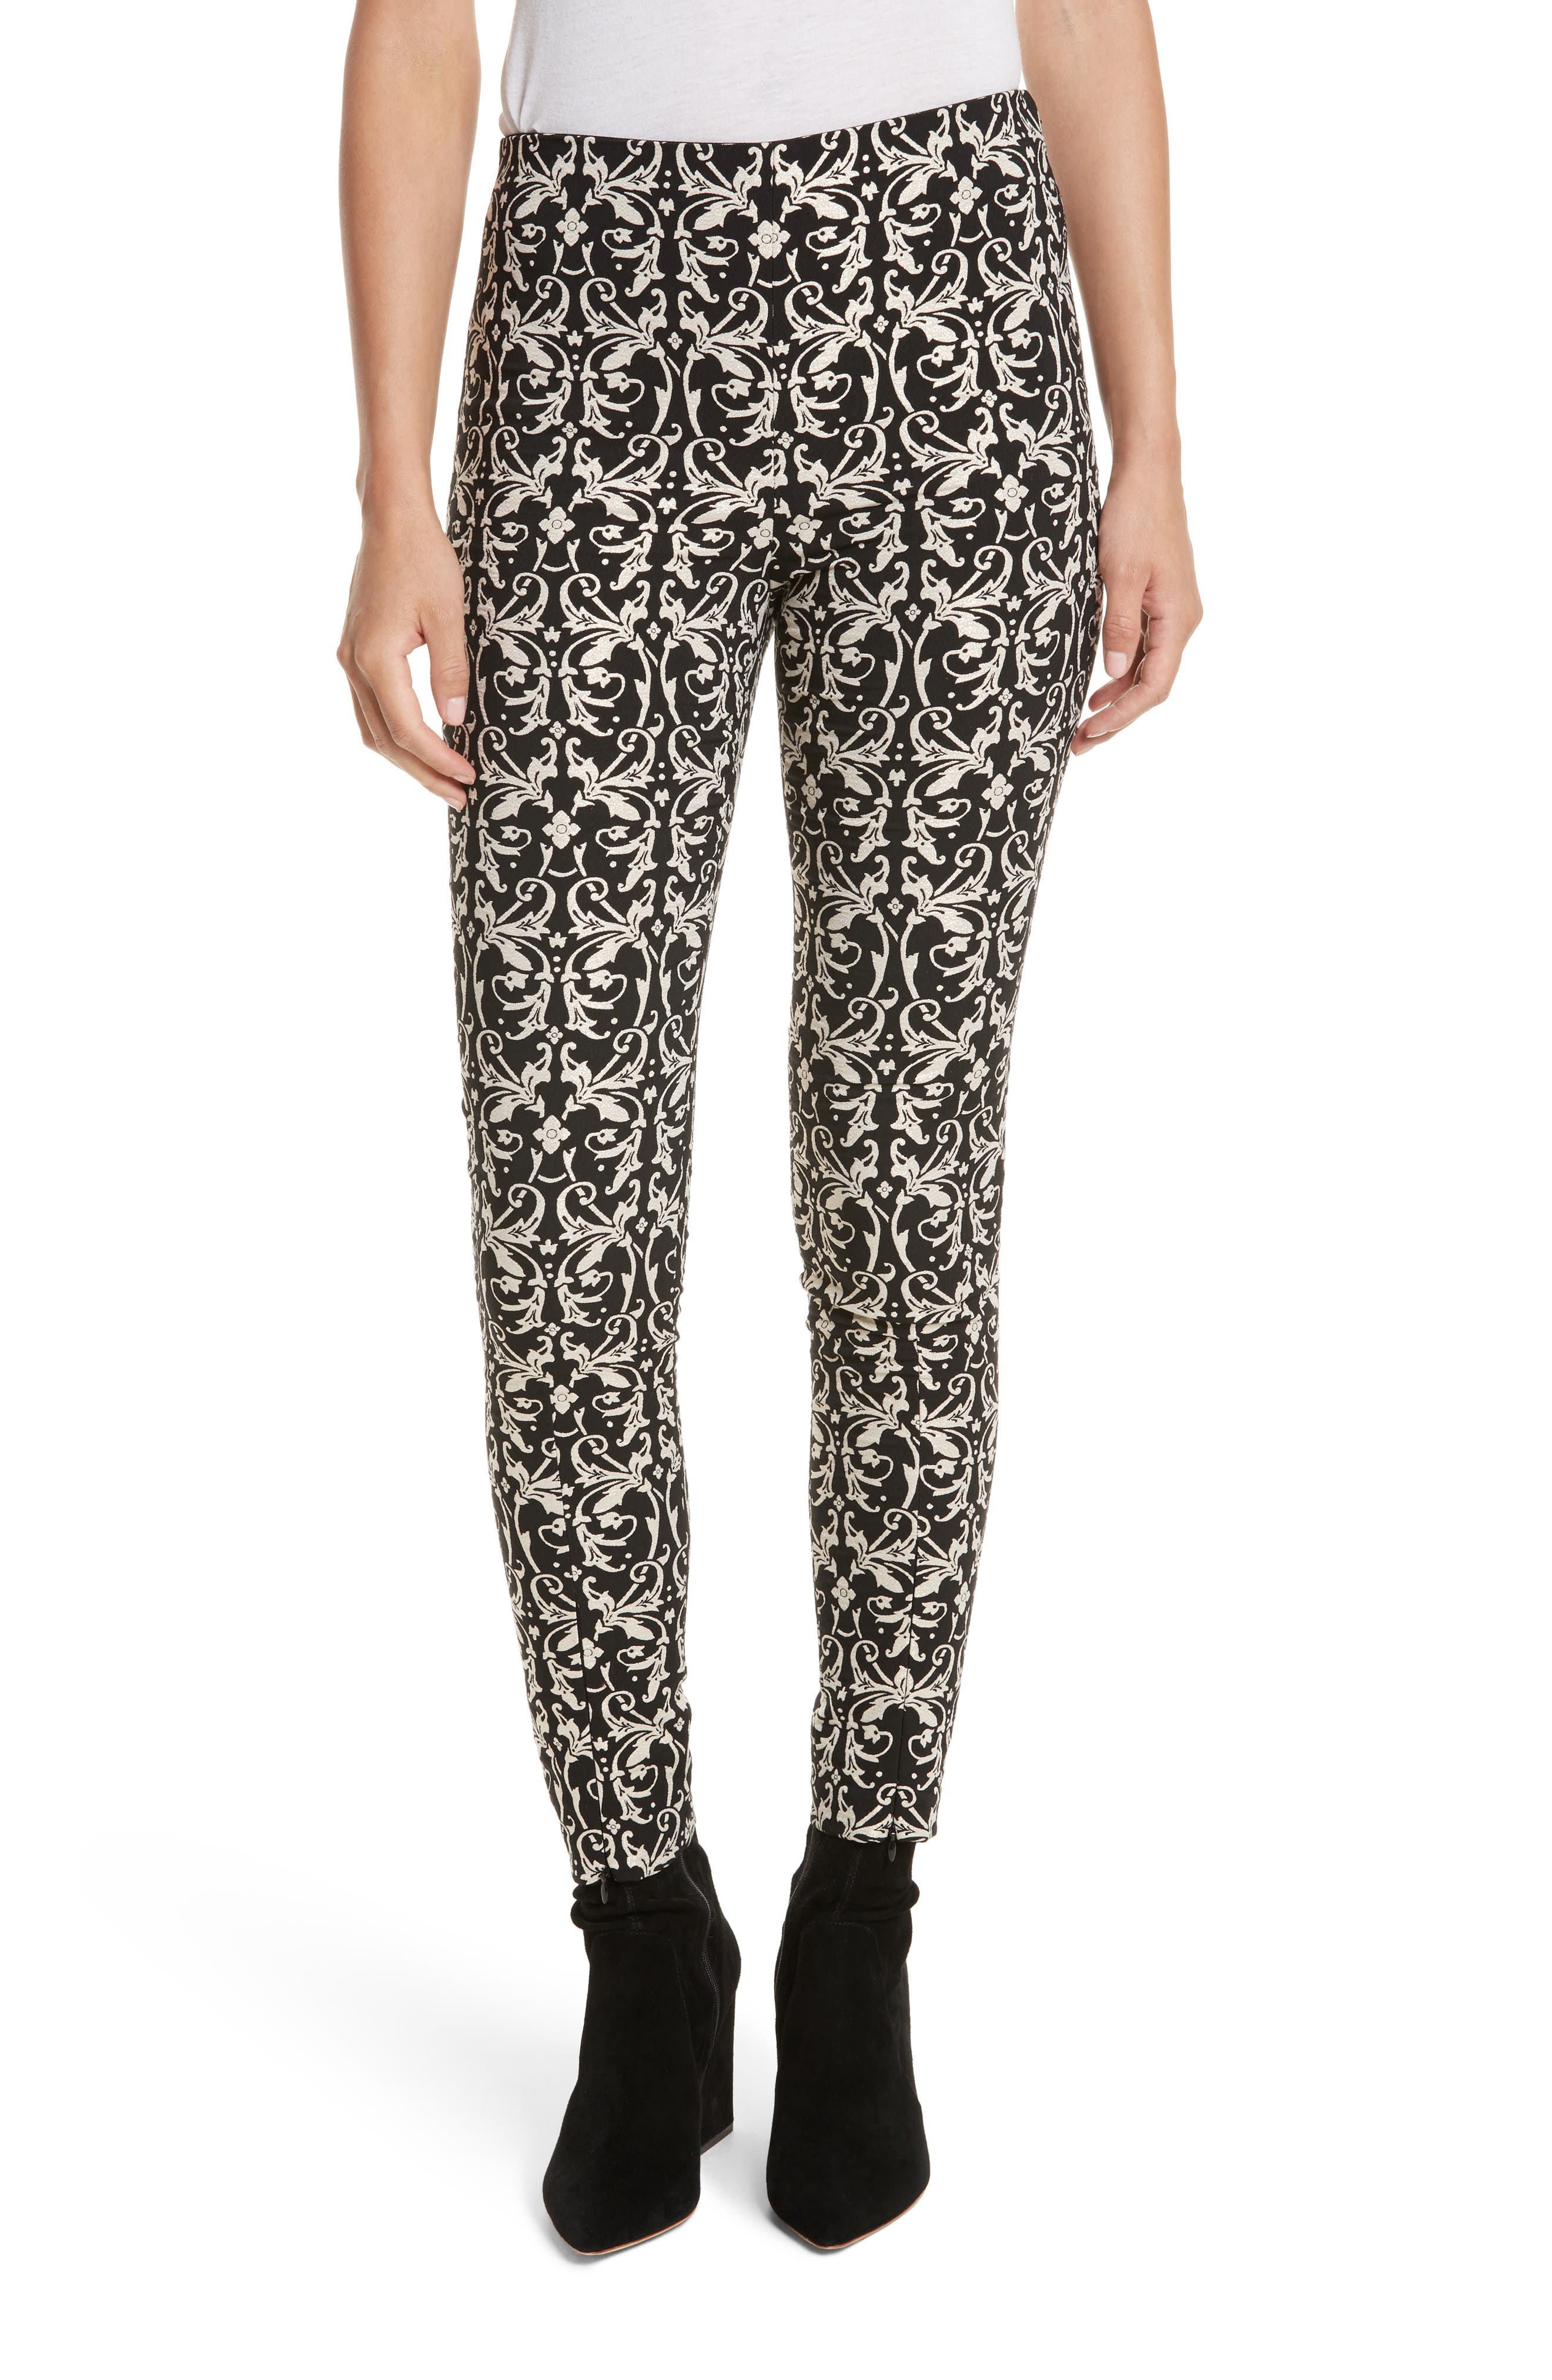 Alternate Image 1 Selected - Alice + Olivia Royce Side Zip Legging